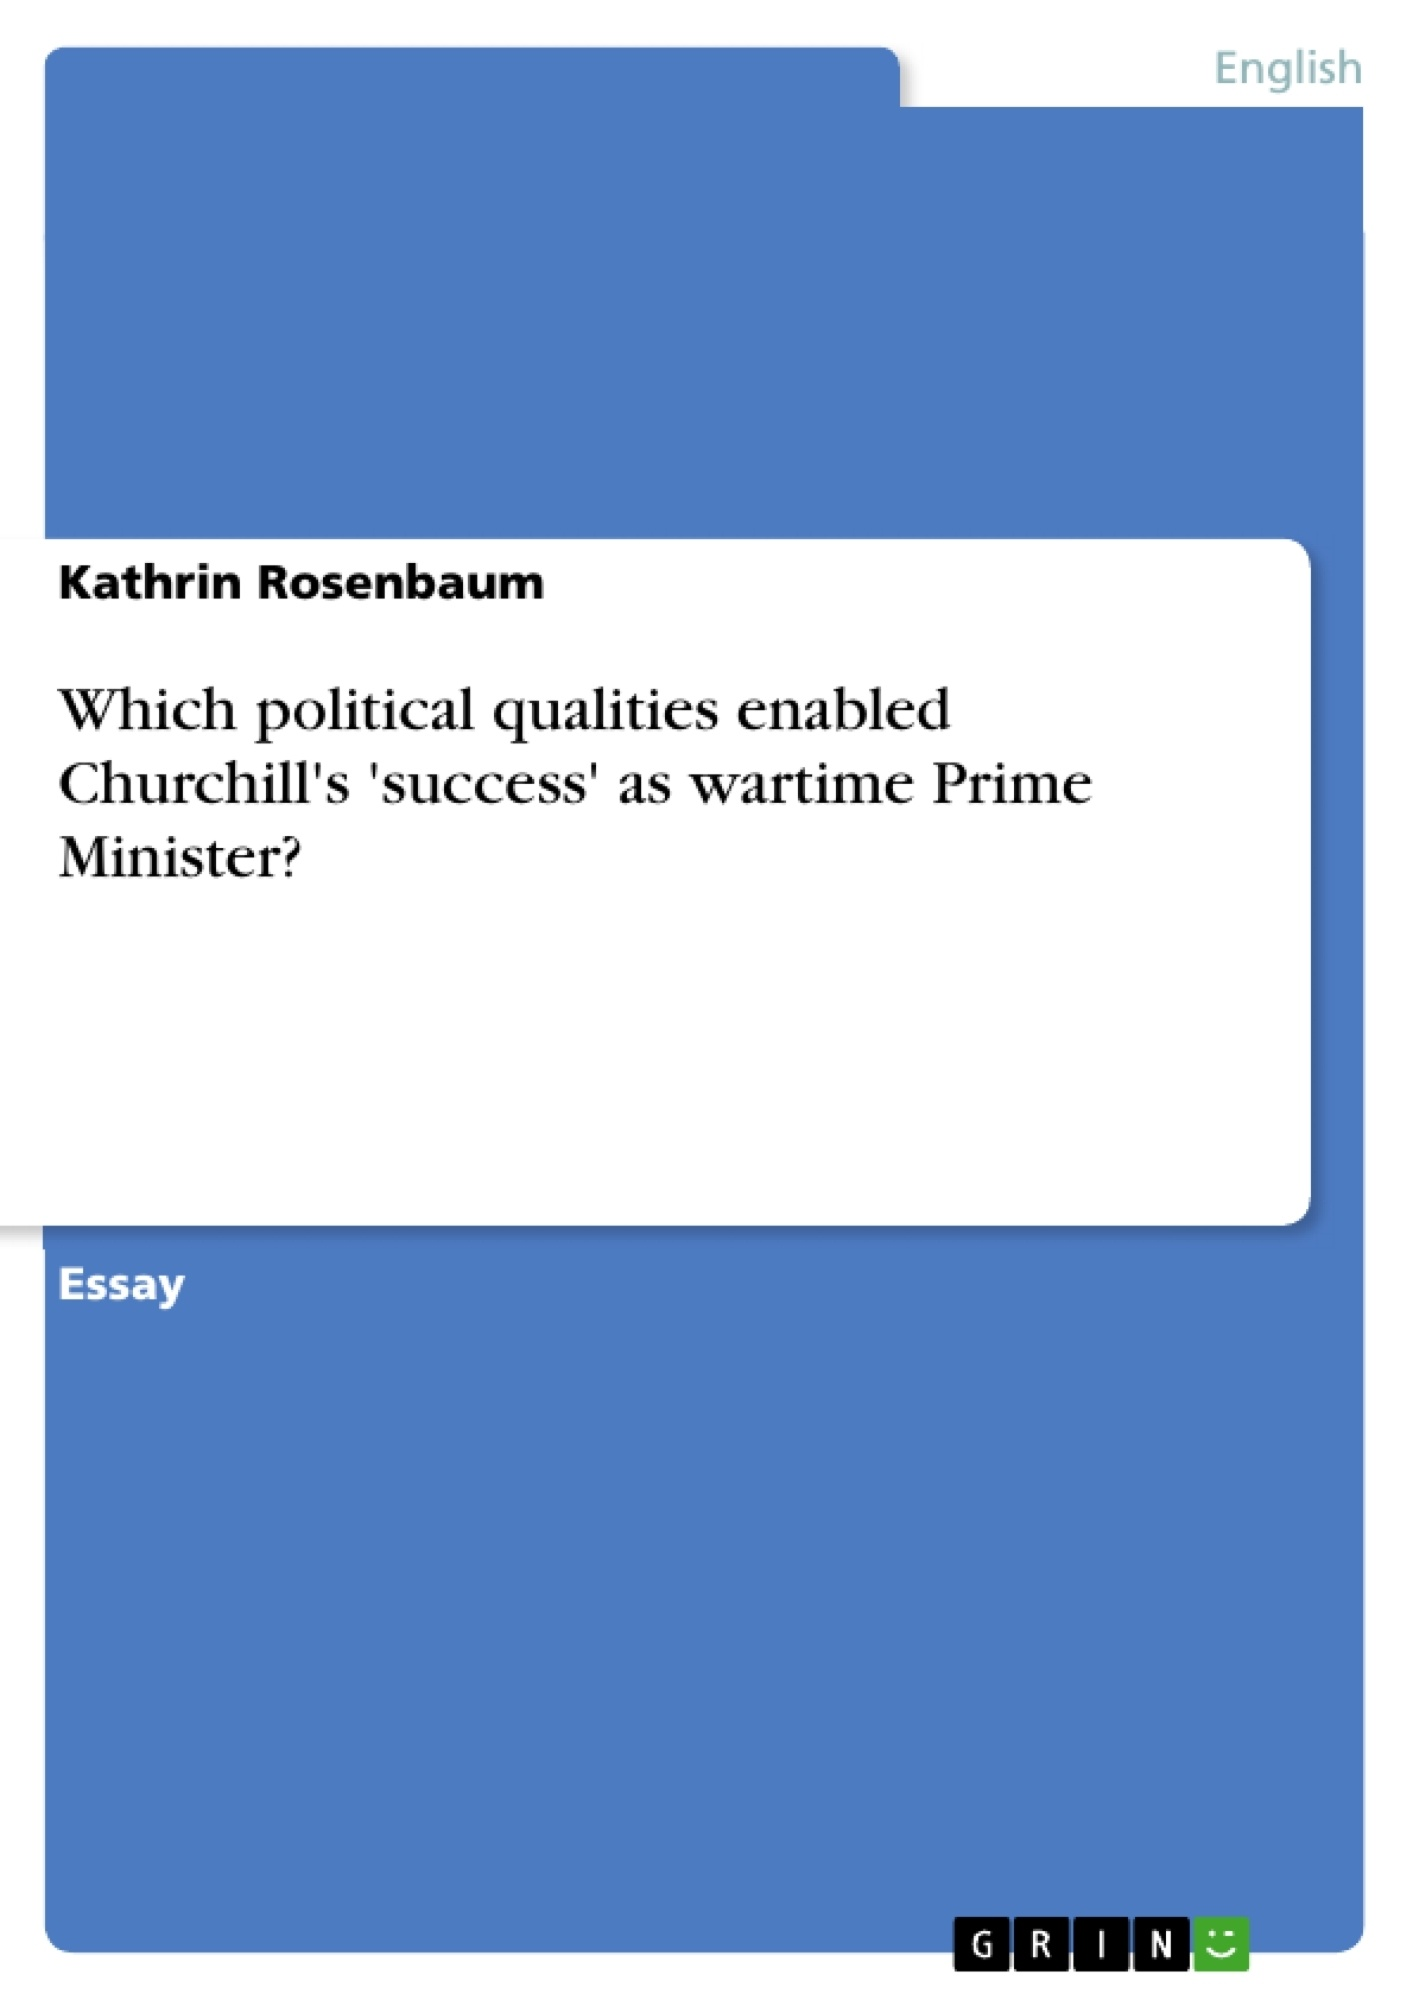 Title: Which political qualities enabled Churchill's 'success' as wartime Prime Minister?